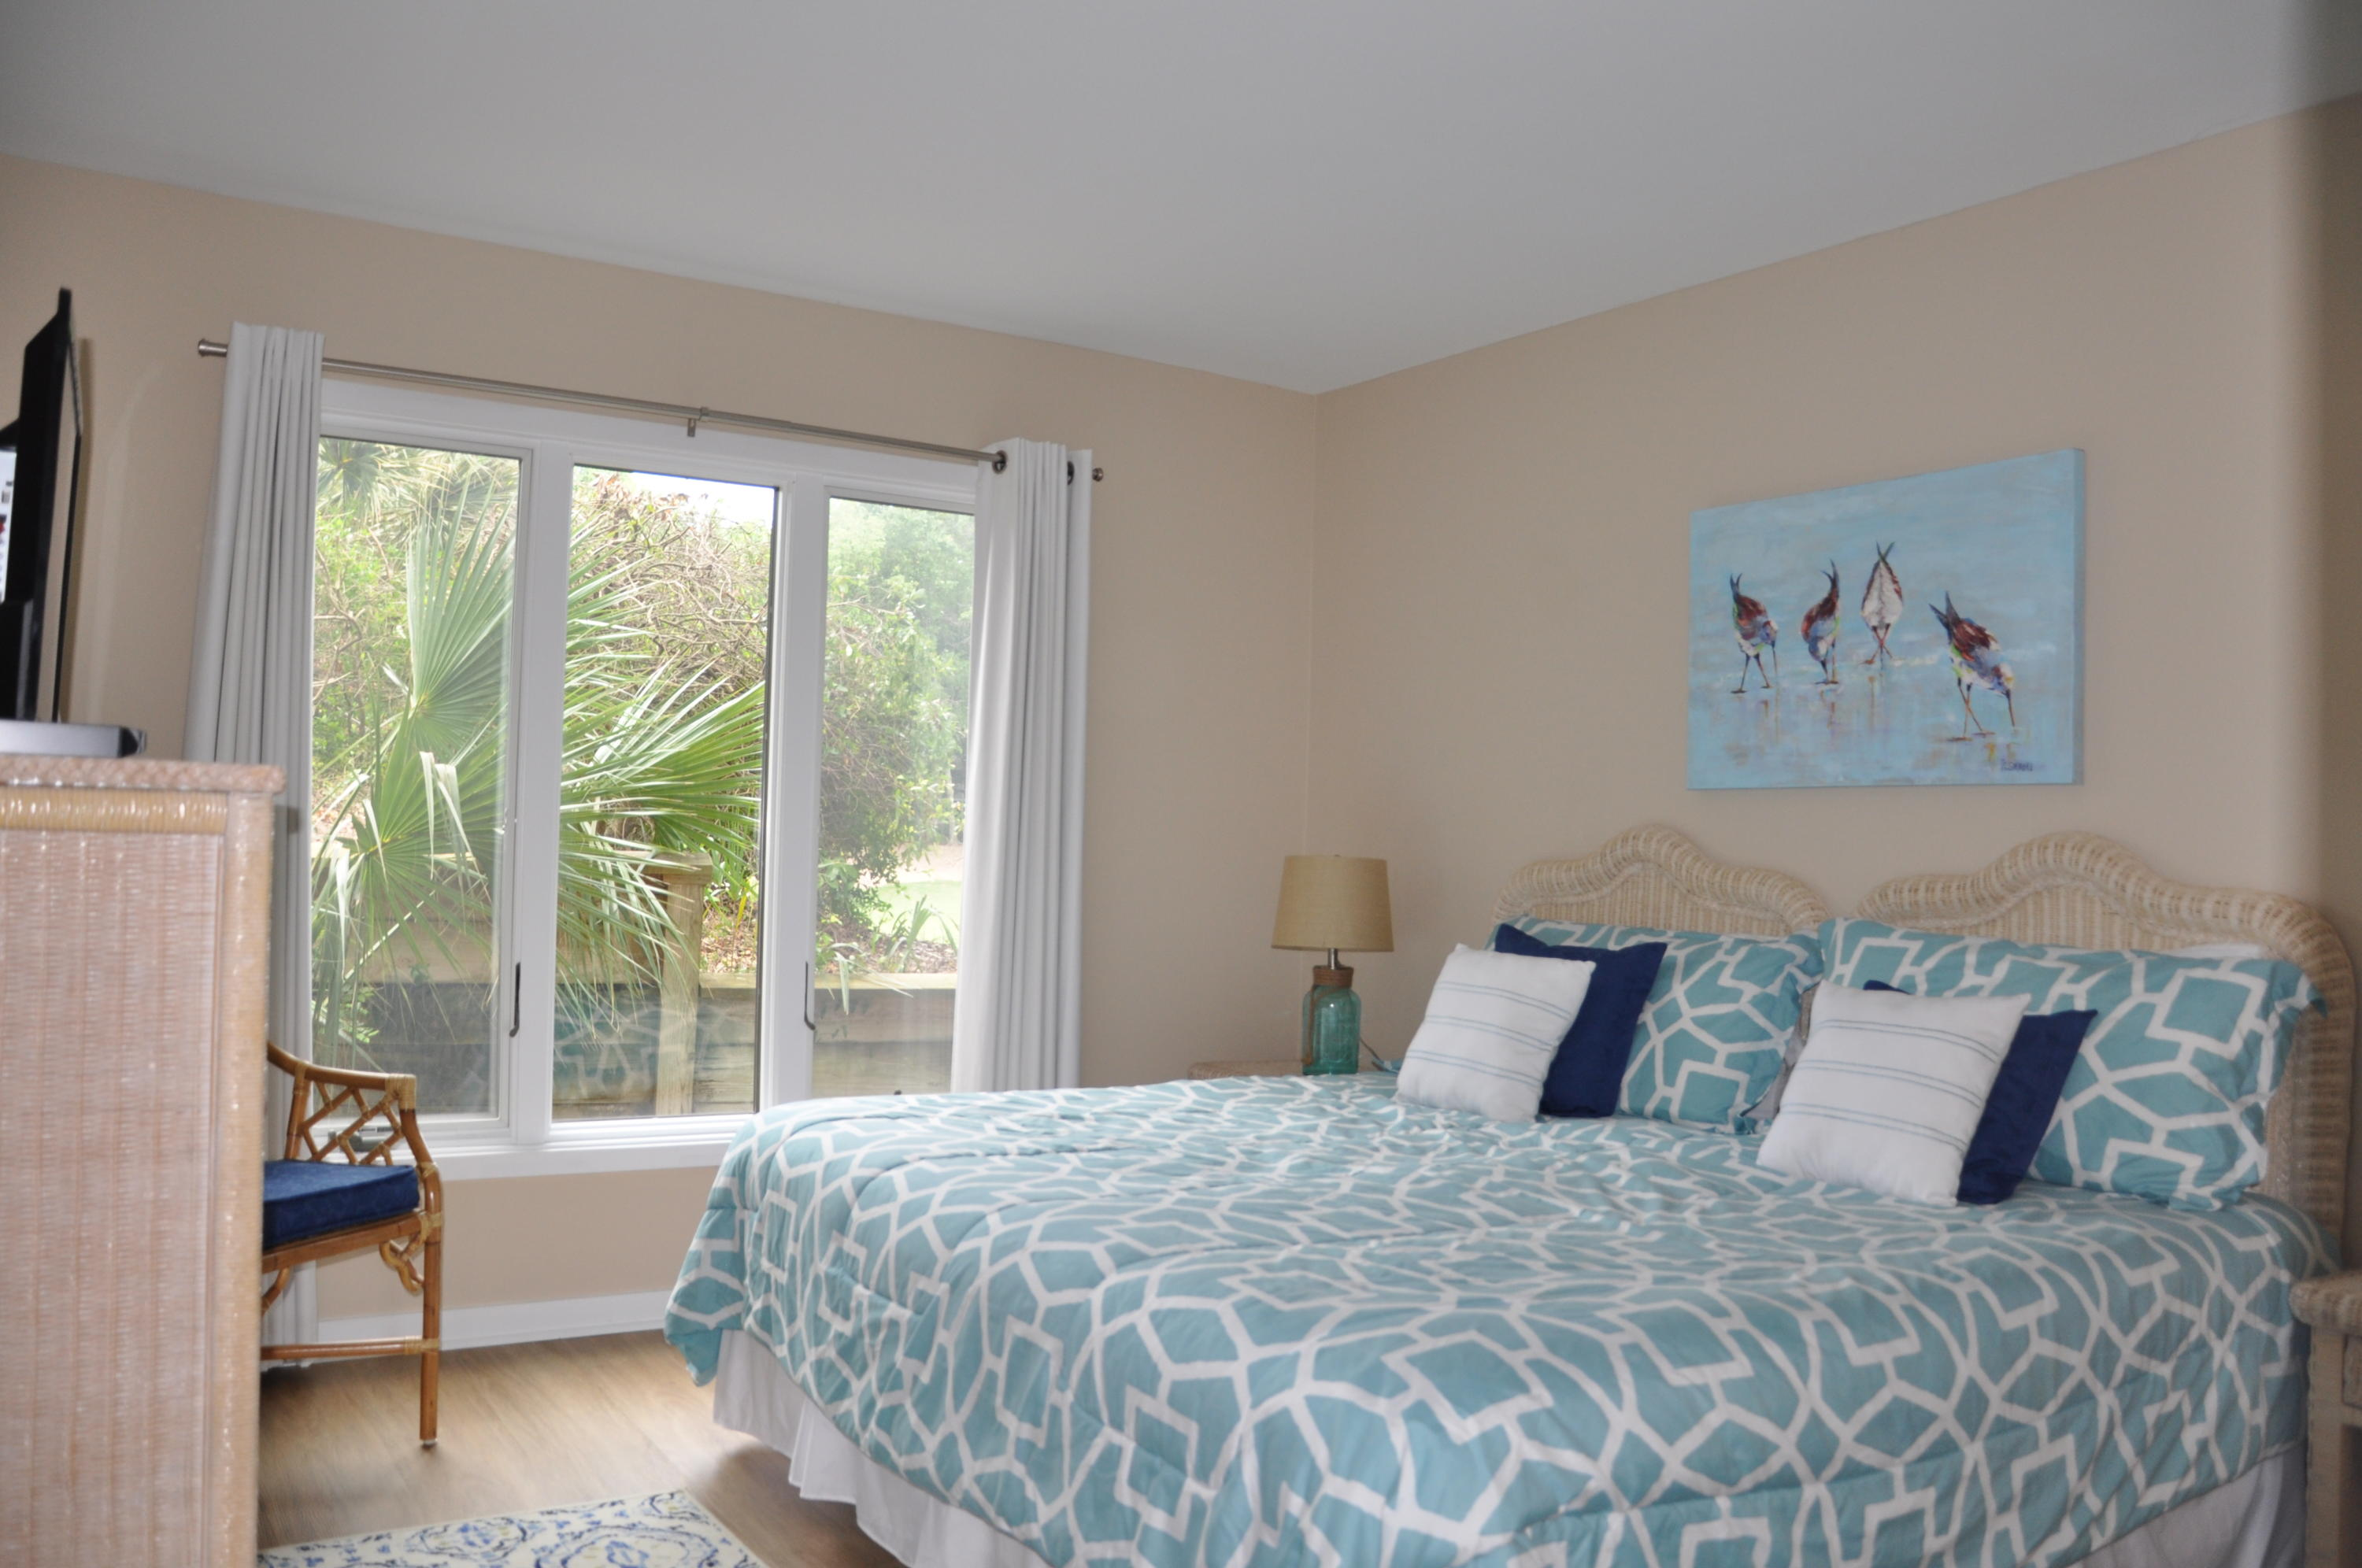 Fairway Villas Homes For Sale - 25 Fairway Dunes (1/6 Share), Isle of Palms, SC - 24